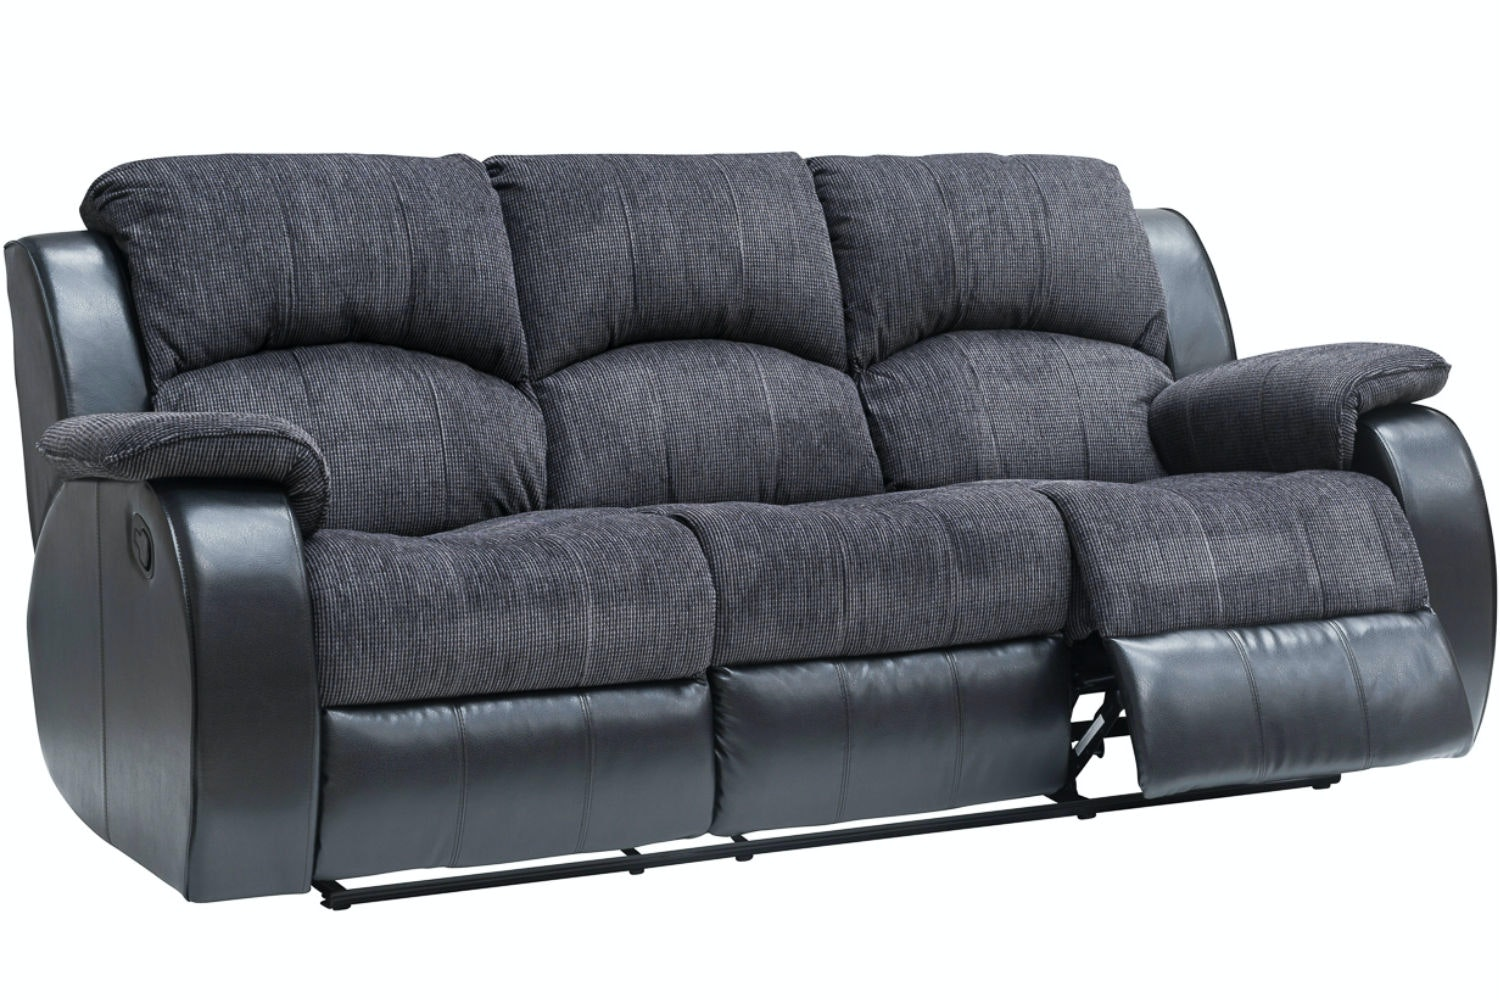 Kayde 3 Seater Recliner | Black